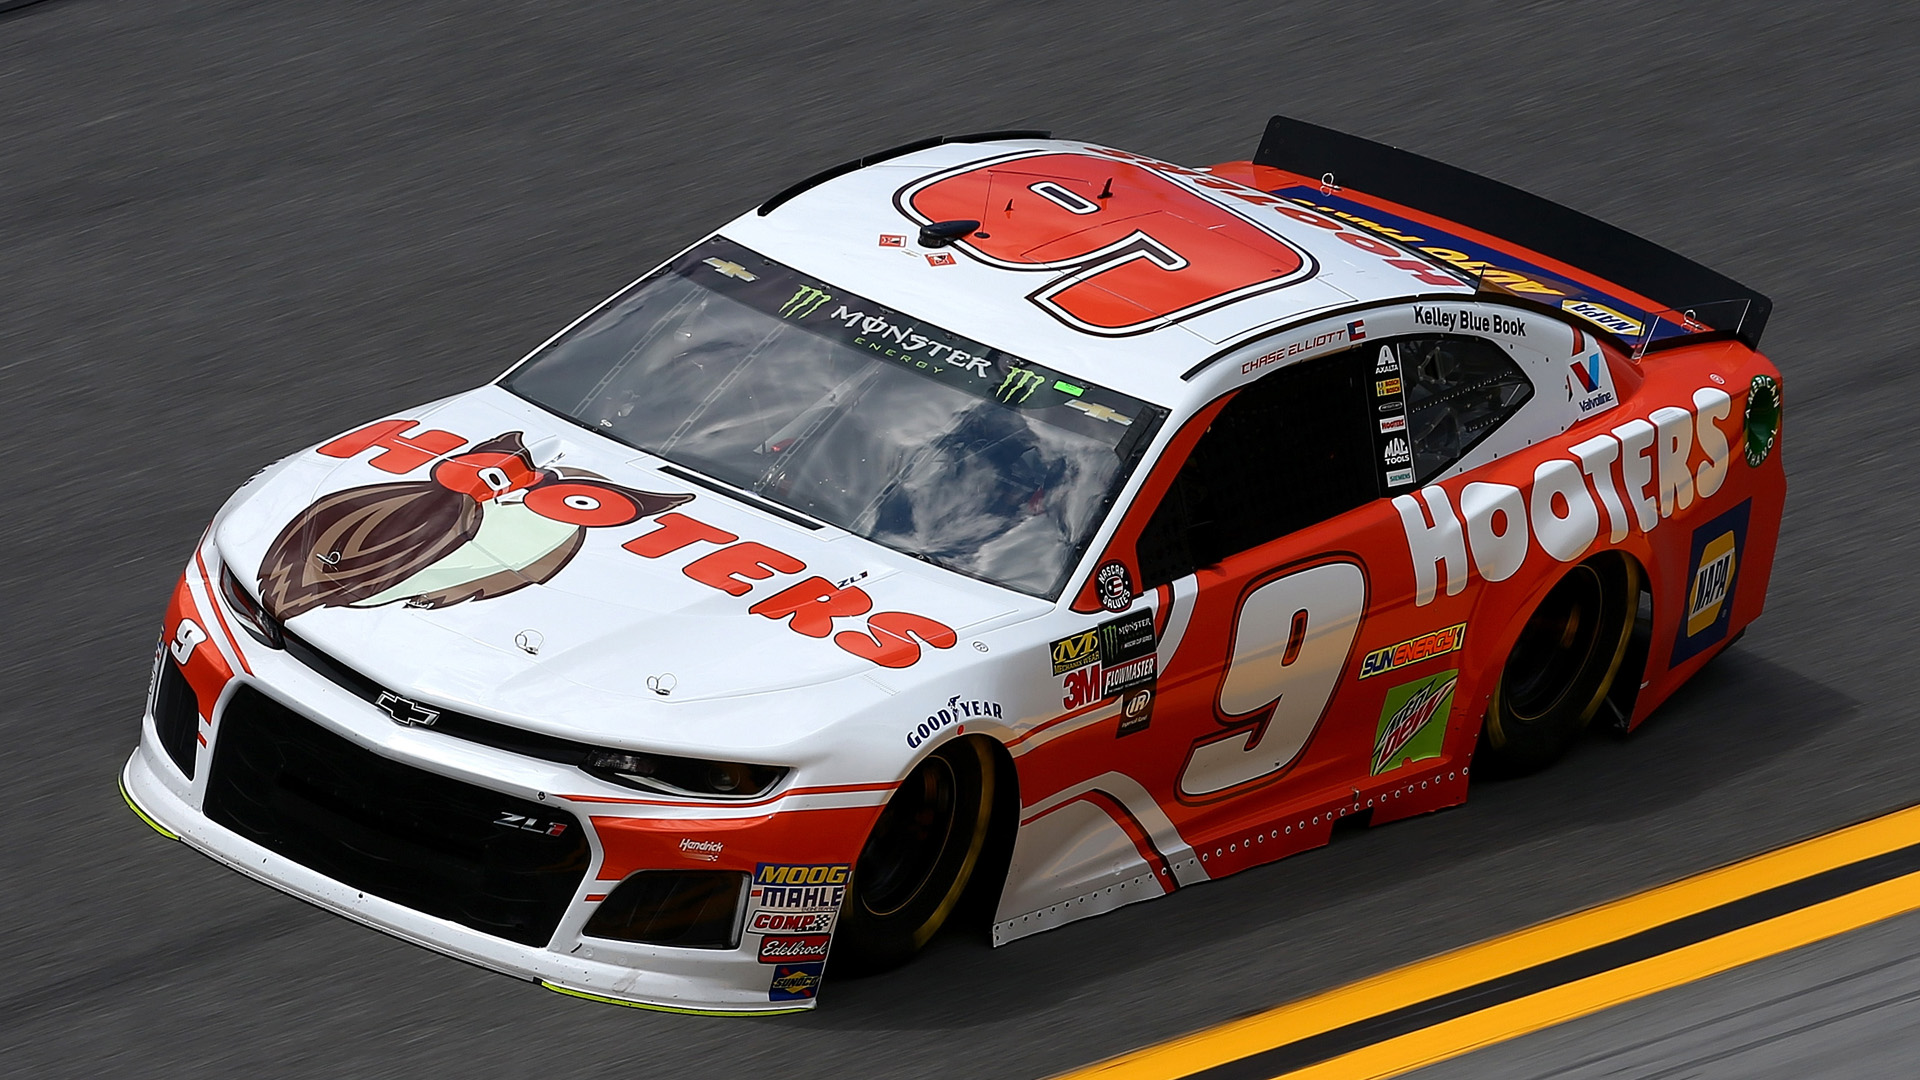 Jones snatches 1st Cup win in crash-filled race at Daytona